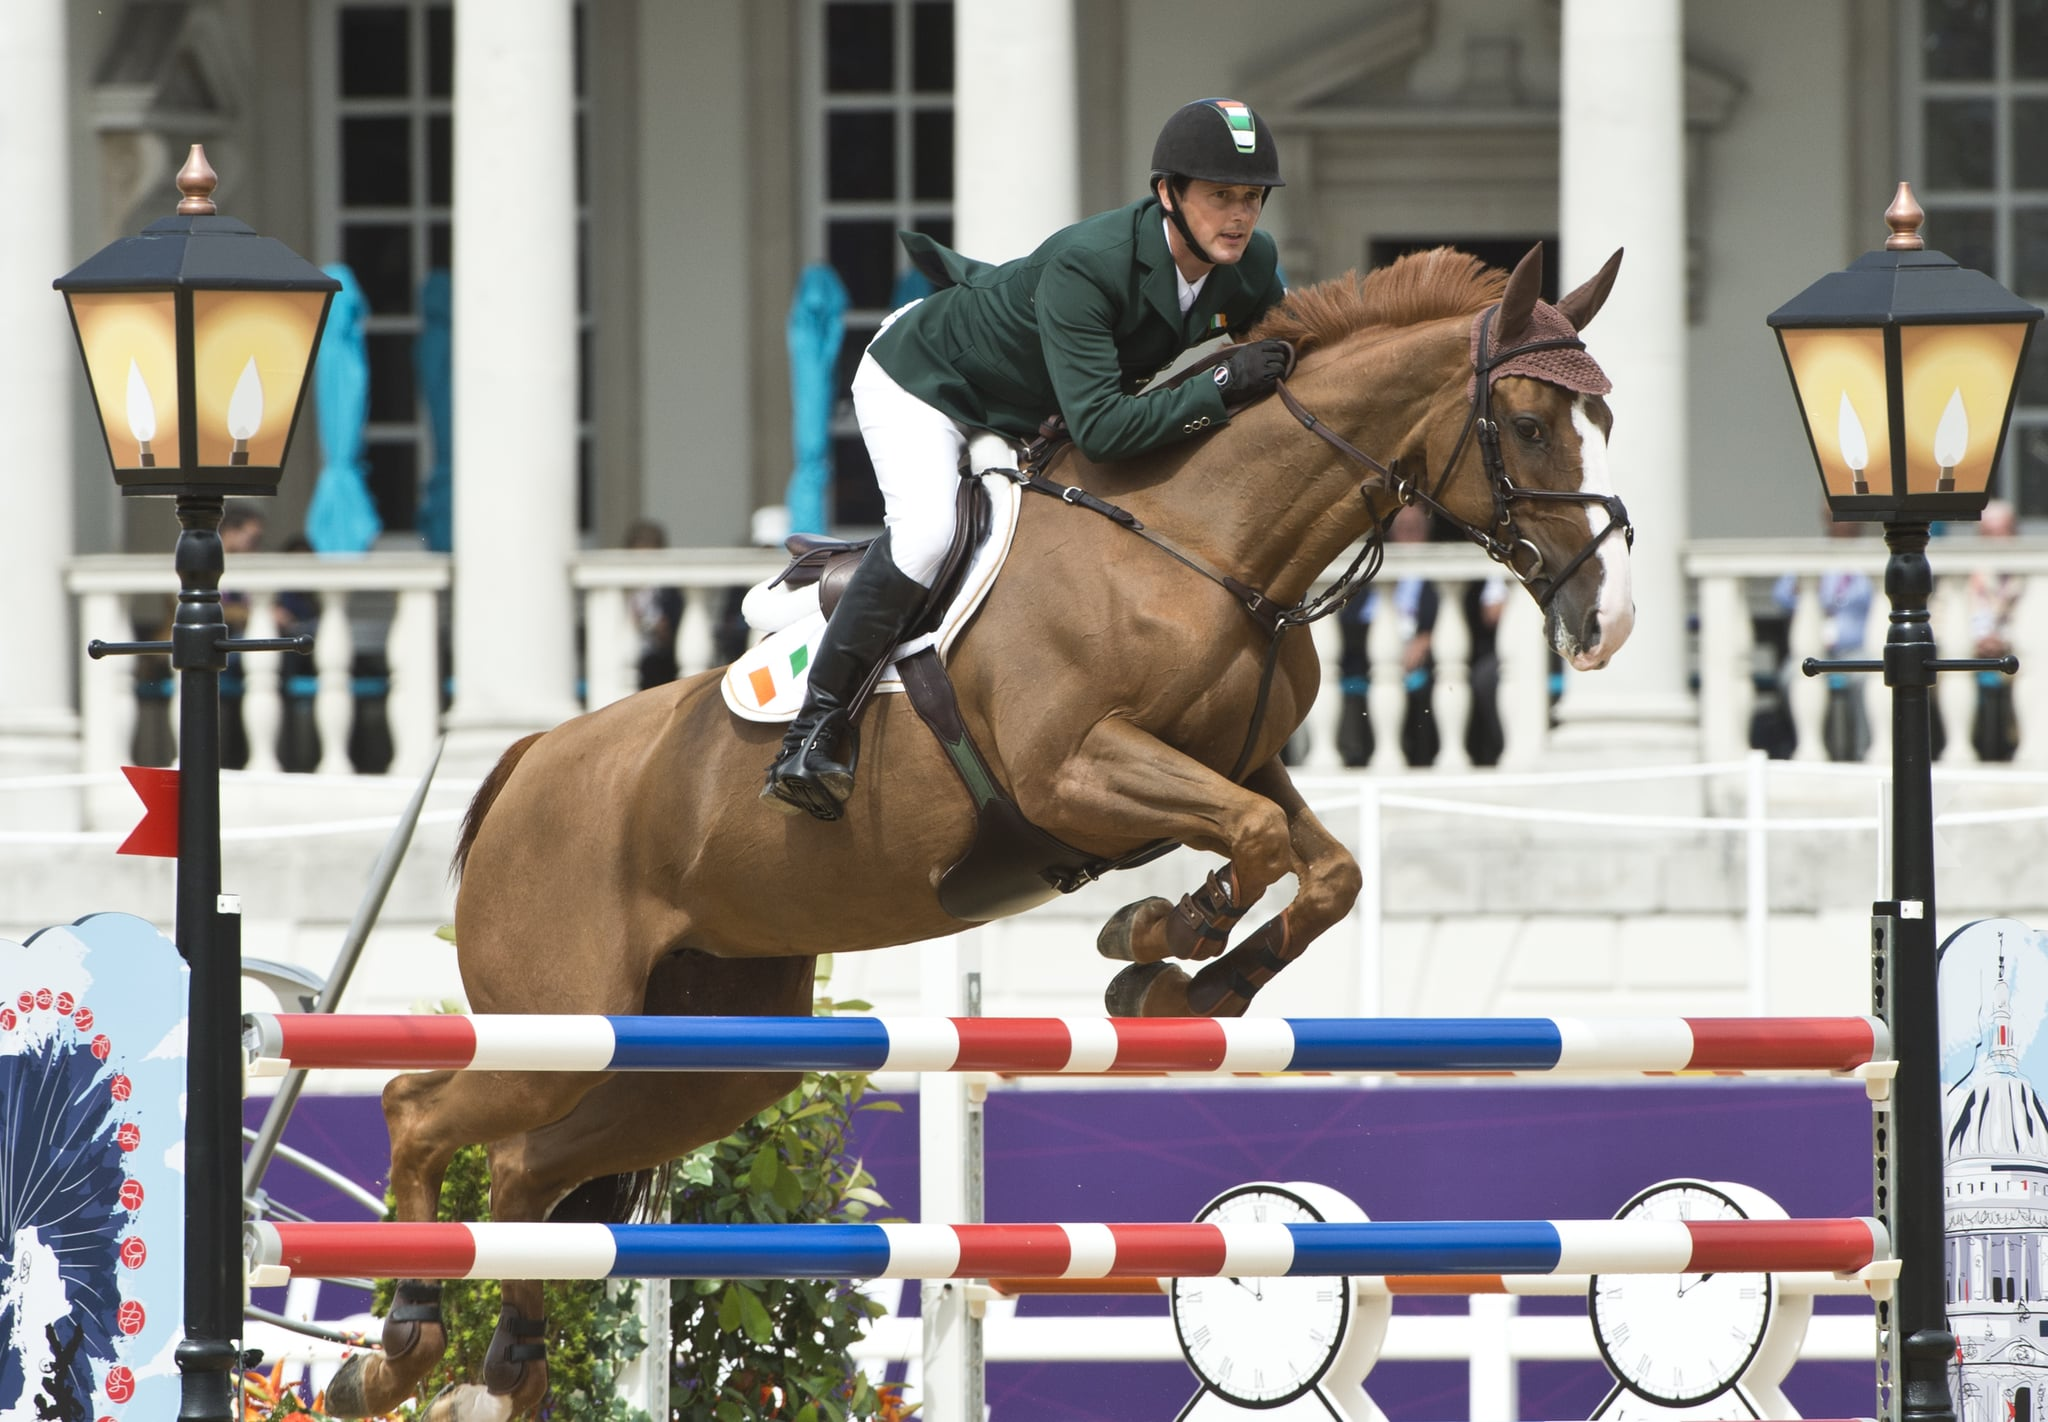 Horse Breeds And Types In Olympic Equestrian Sports Popsugar Pets